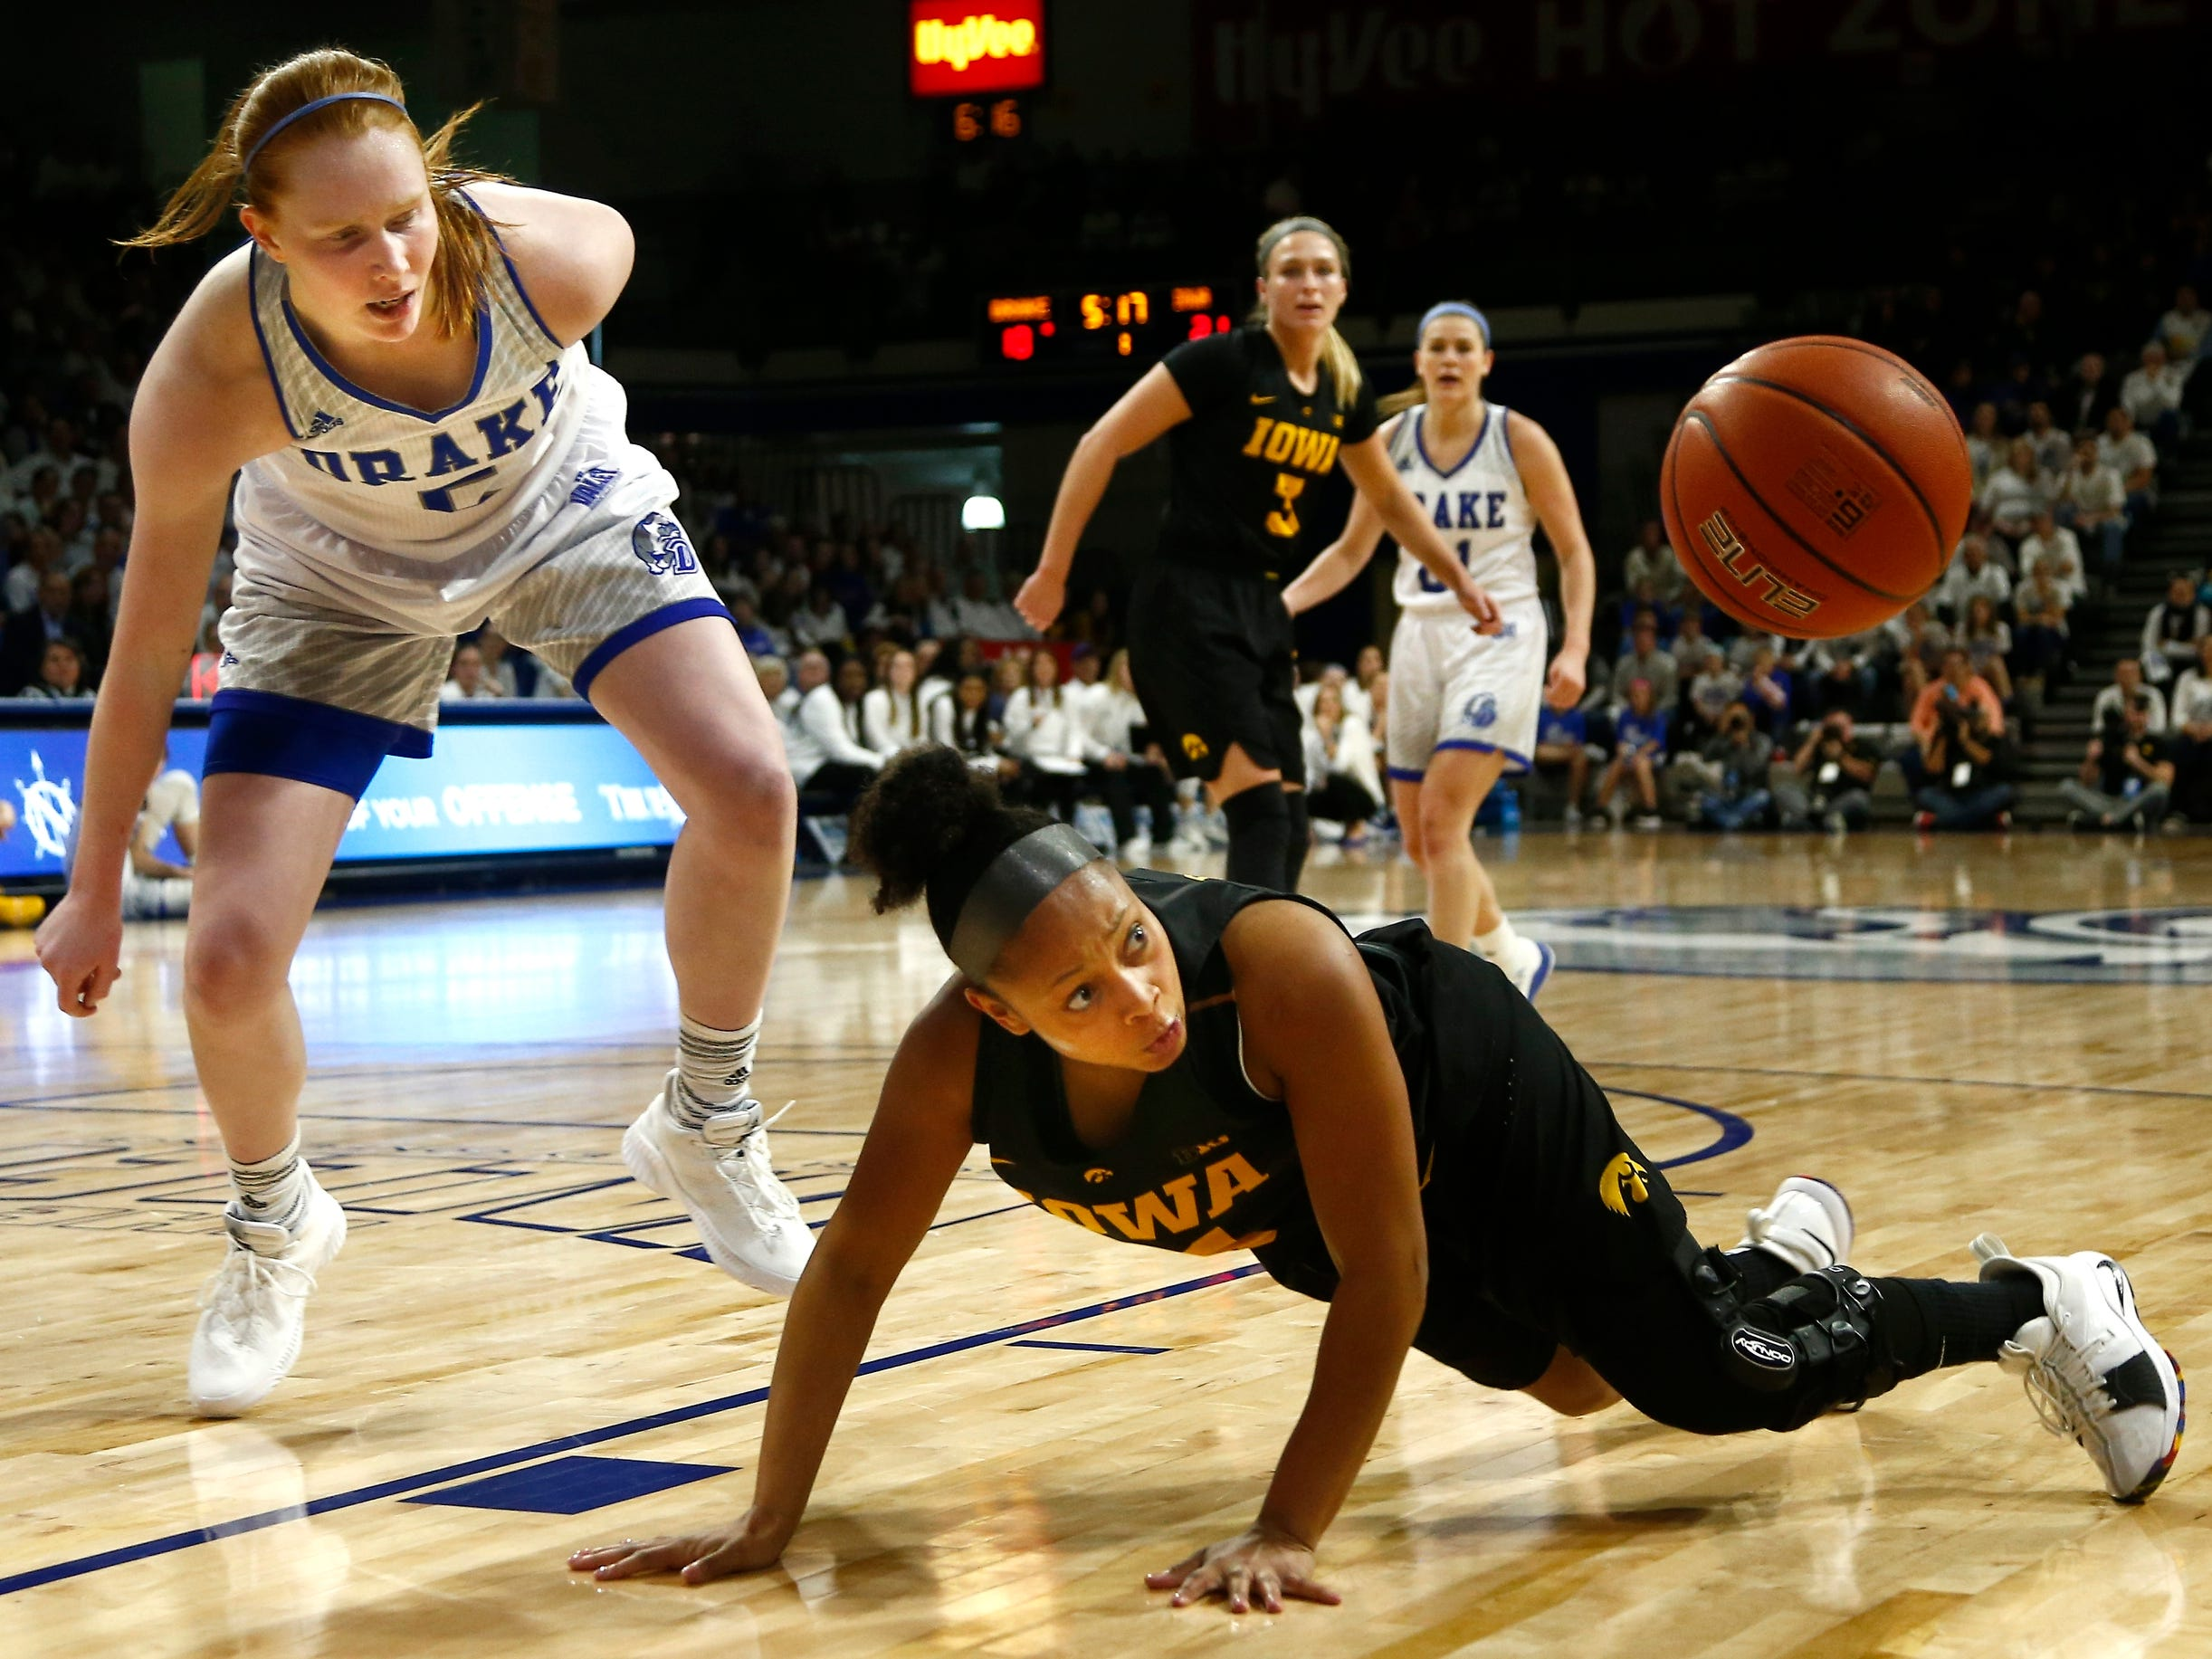 Iowa's Tania Davis (11) looks over at a loose ball as Drake's BeccaHittner (5) does the same during their basketball game on Friday, Dec. 21, 2018, in Des Moines. Drake takes a 45-43 lead into halftime.